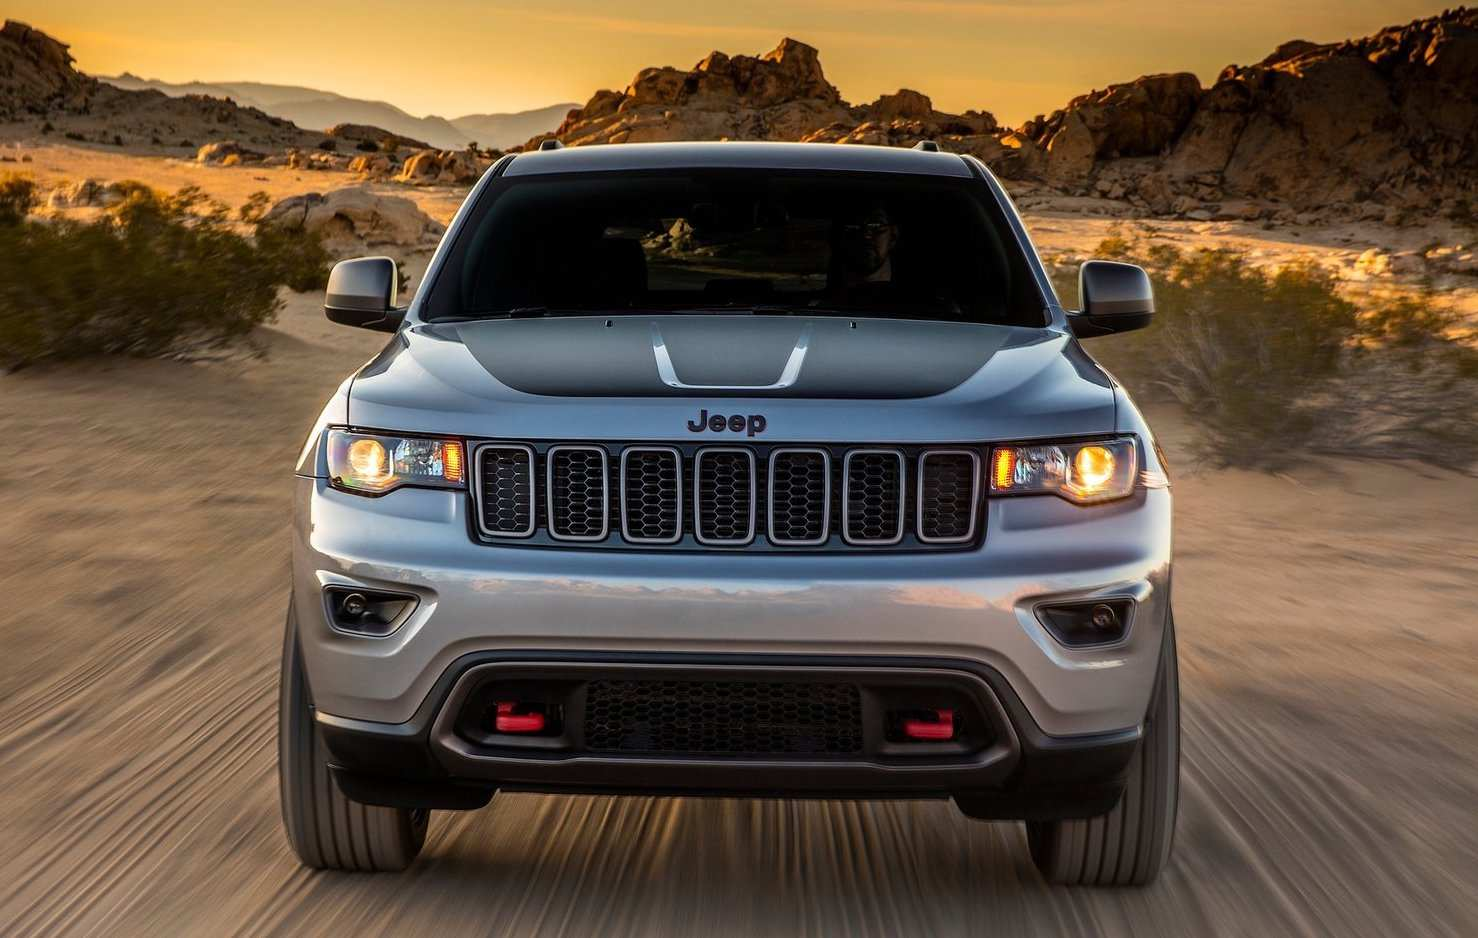 52 All New 2020 Jeep Grand Cherokee Price Design And Review